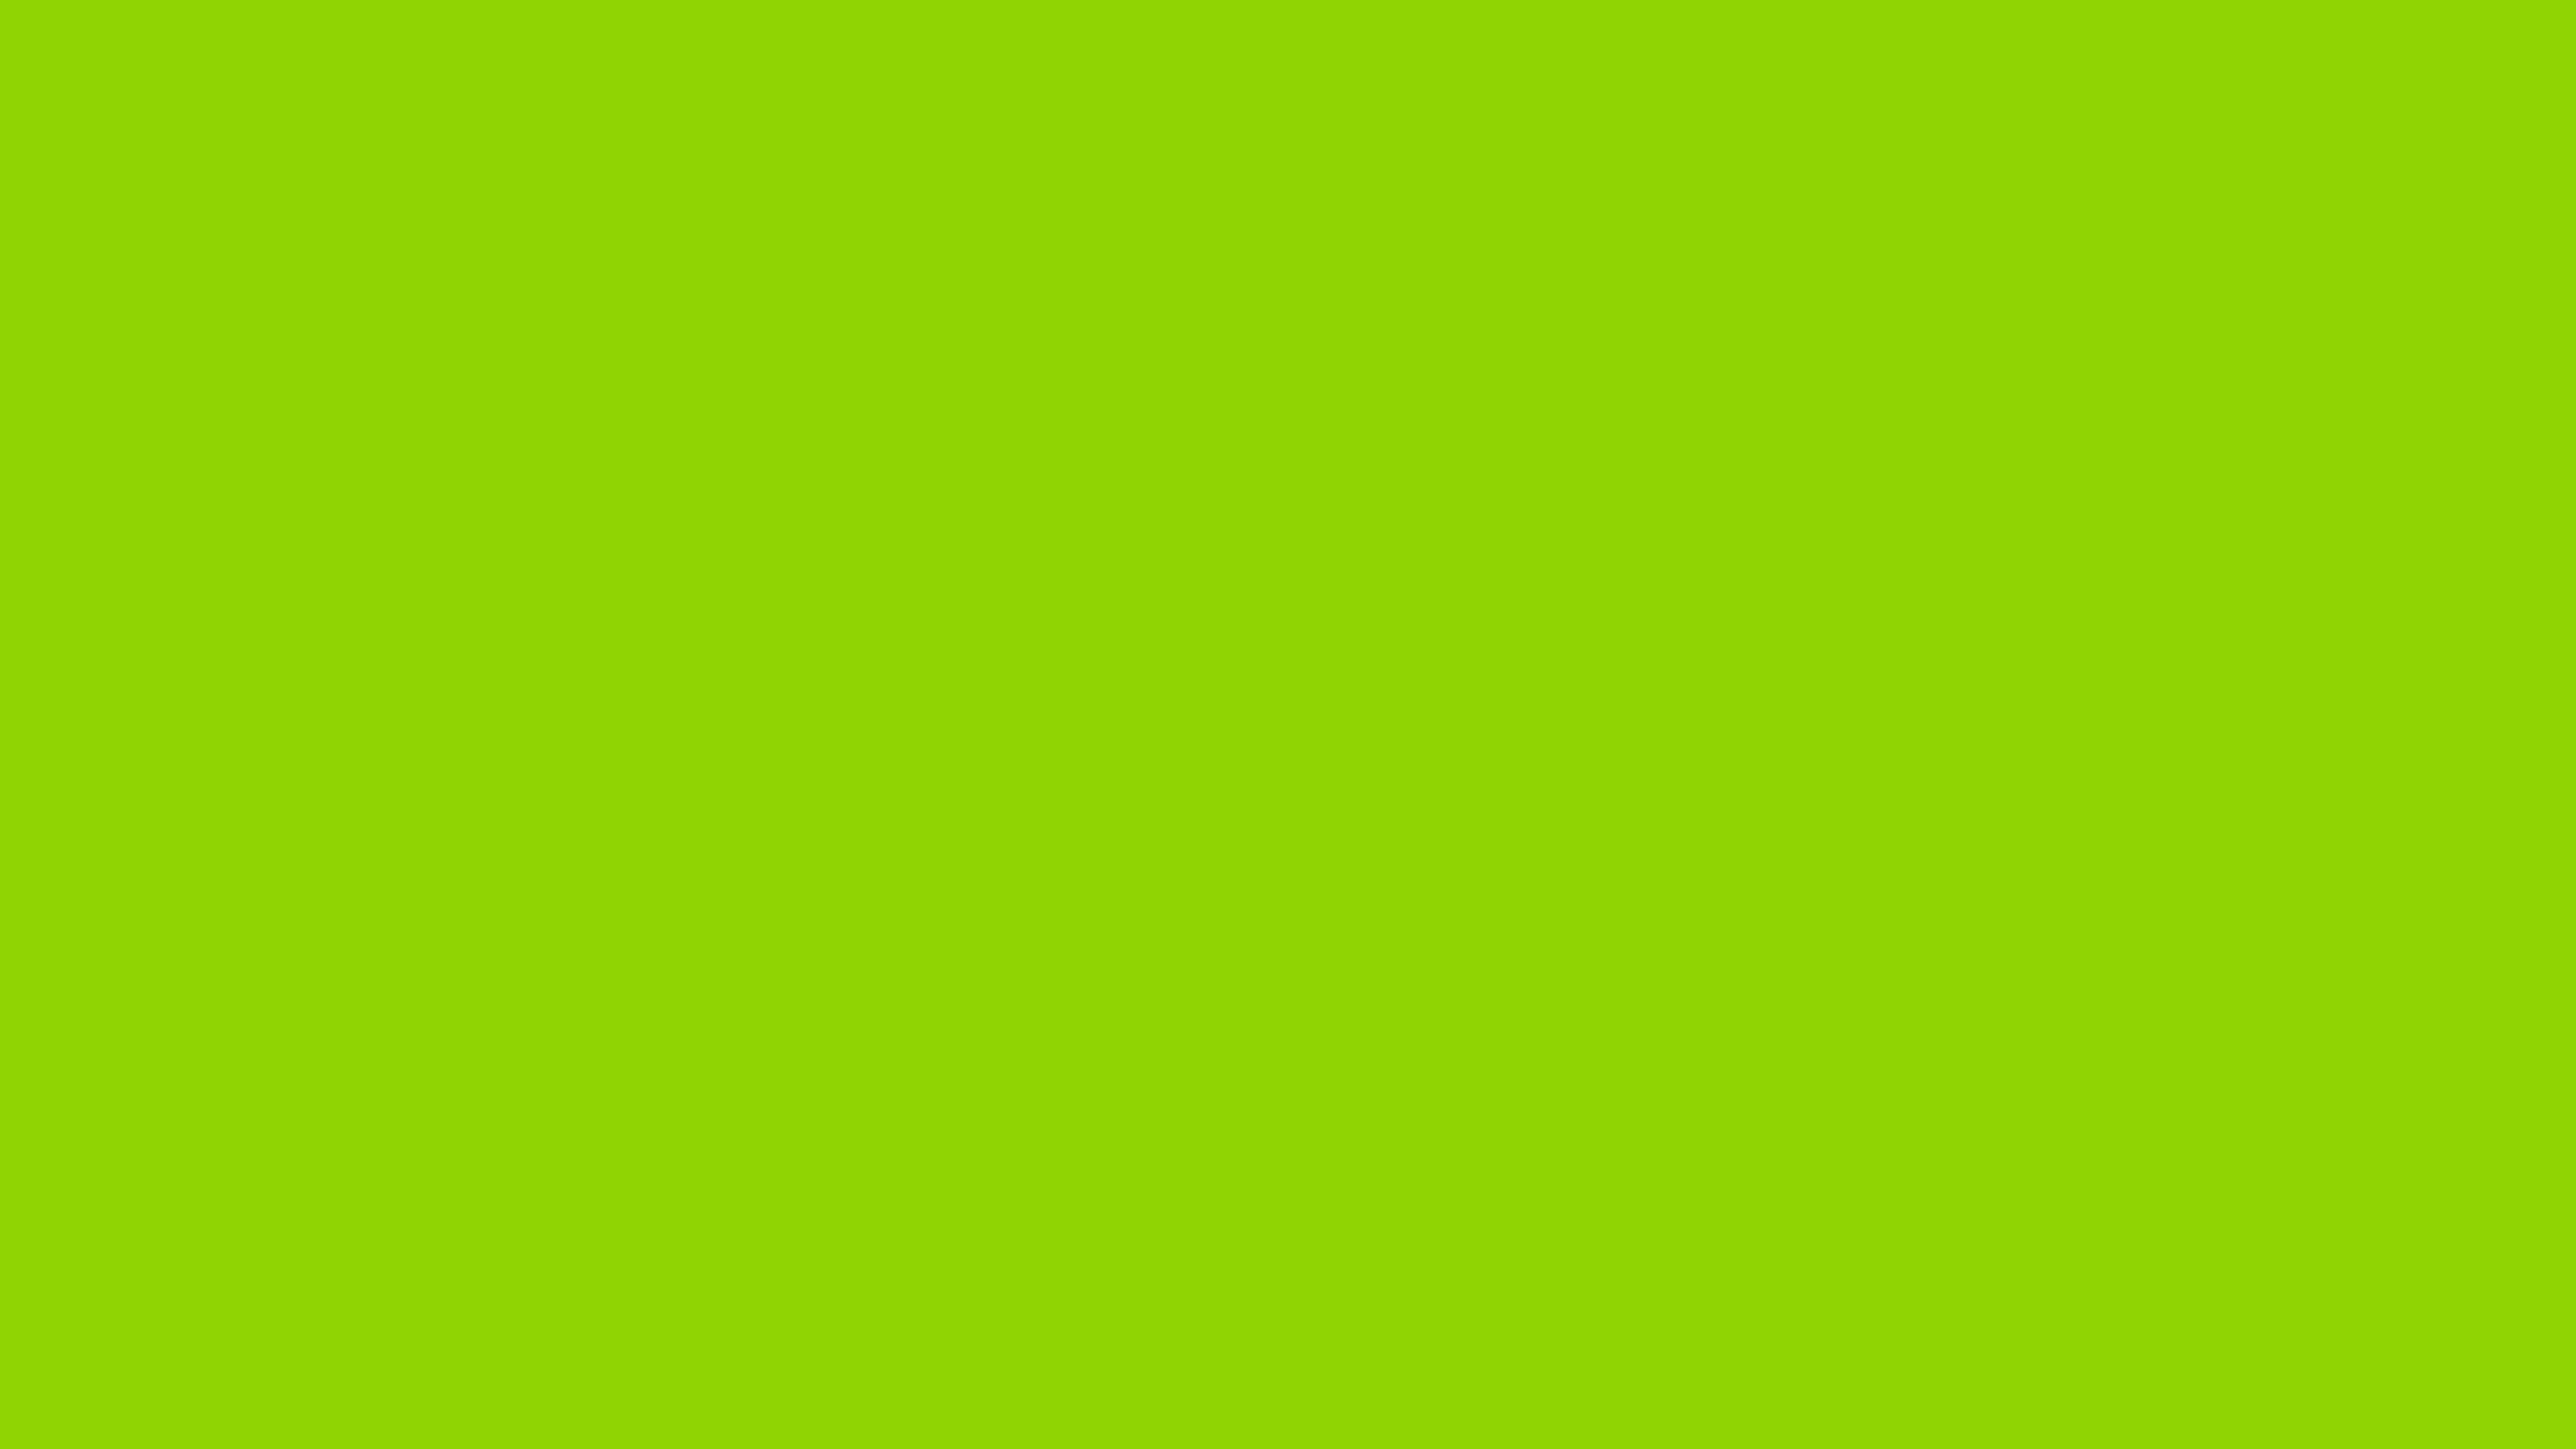 4096x2304 Sheen Green Solid Color Background